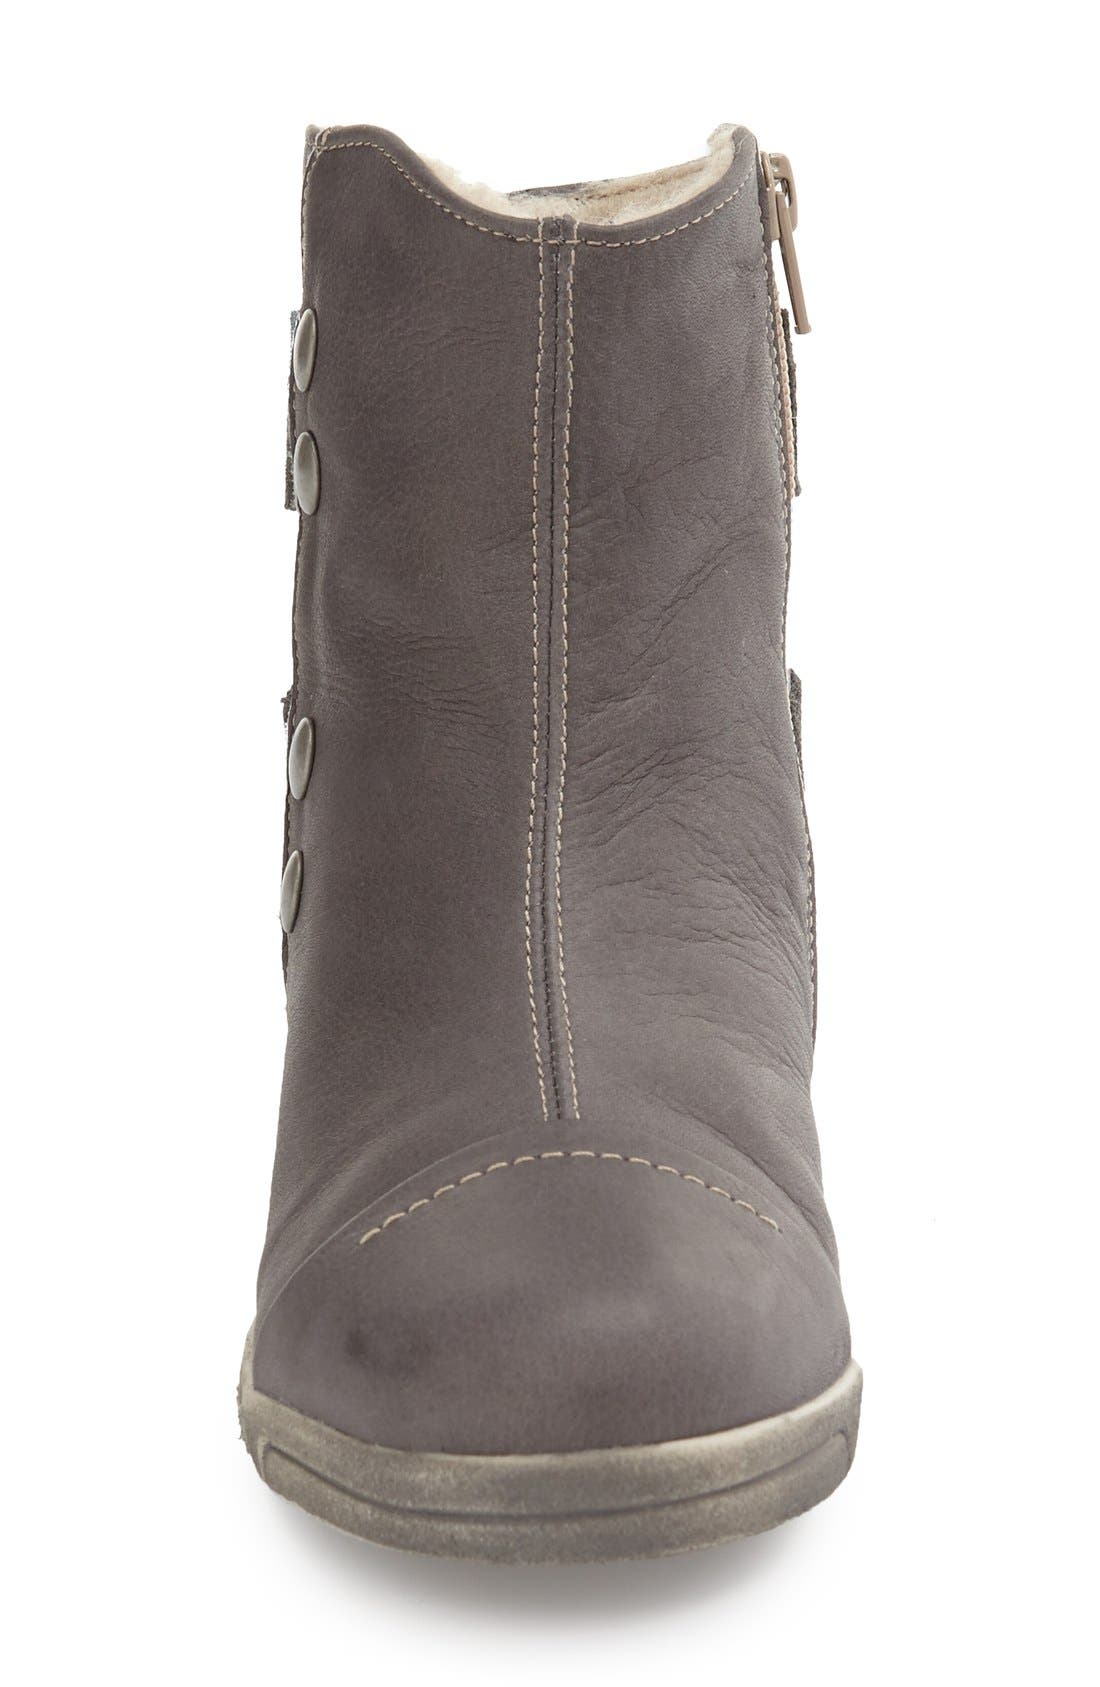 'Aline' Faux Shearling Lined Bootie,                             Alternate thumbnail 3, color,                             Dark Grey Leather